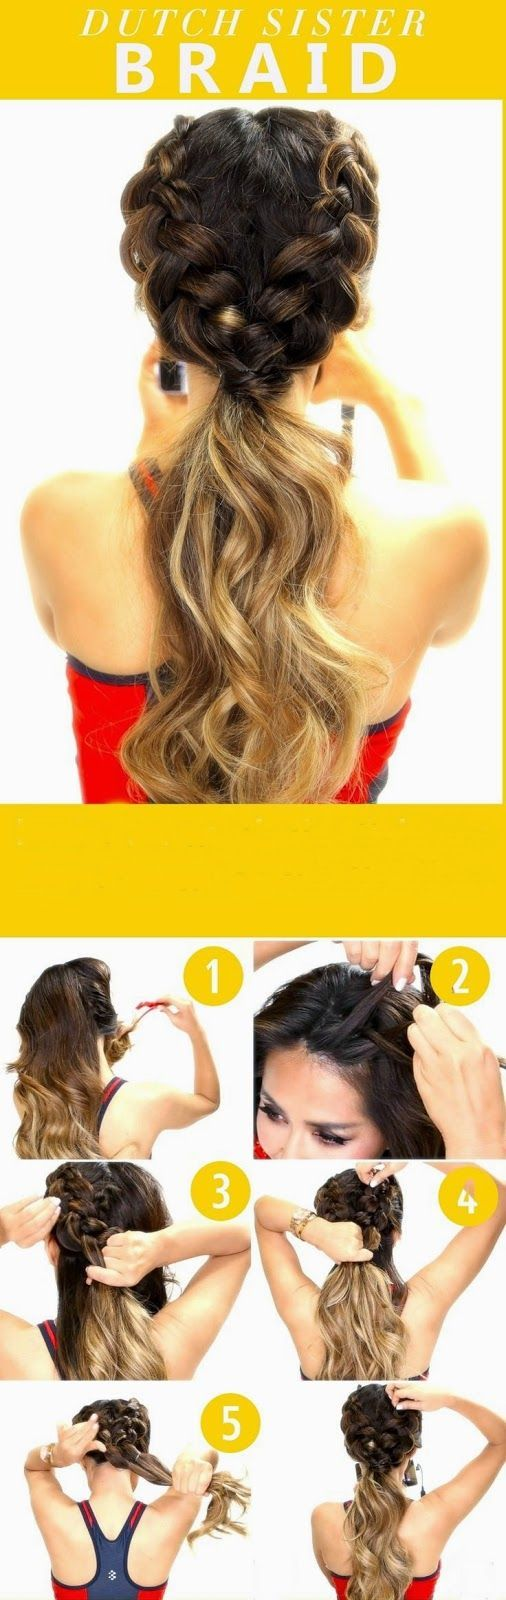 25+ best swimming hairstyles ideas on pinterest | swim hair styles